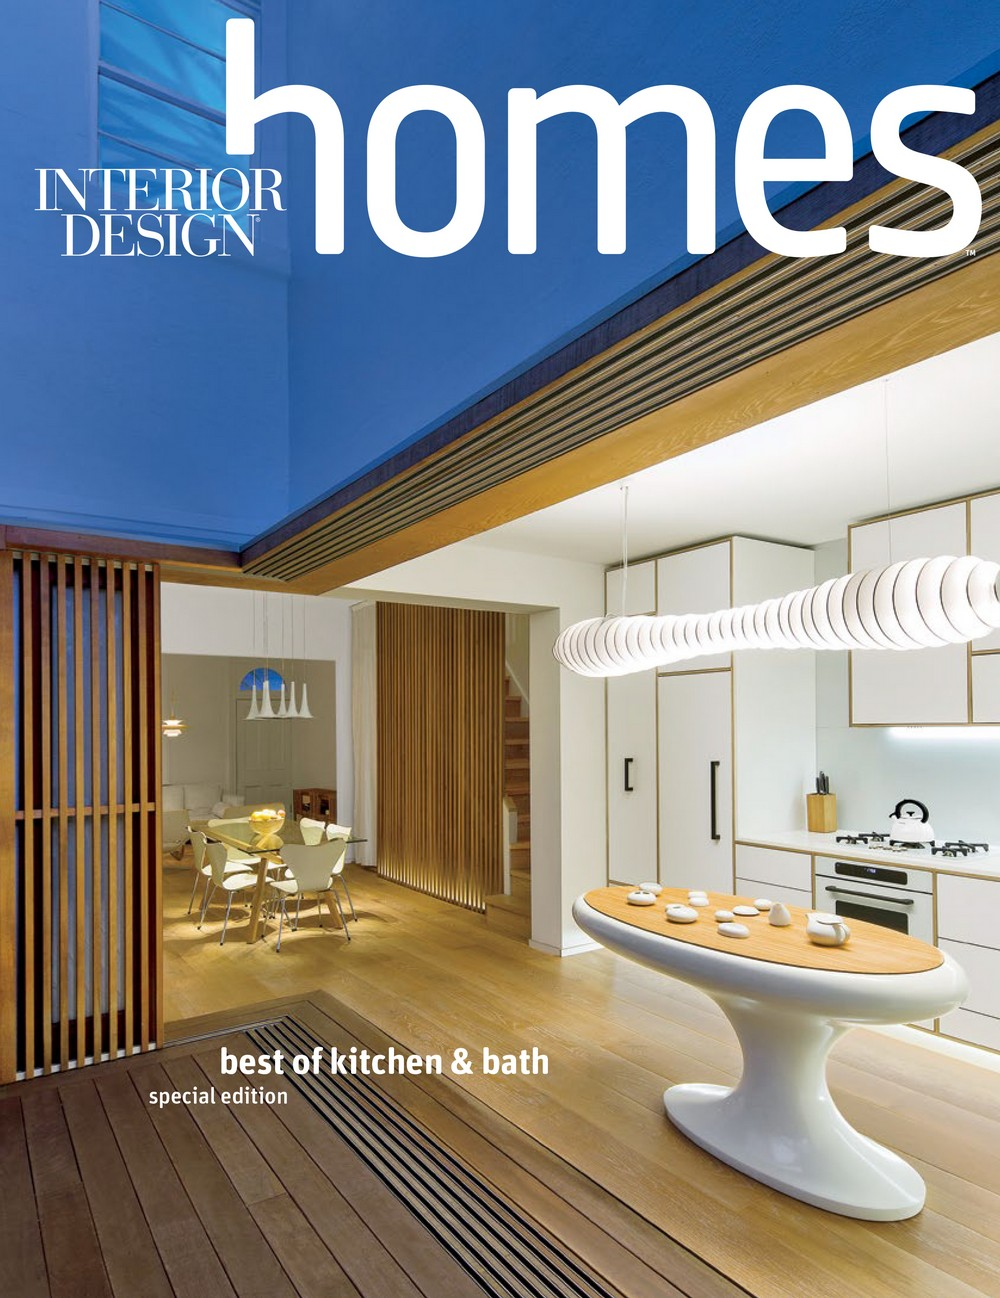 Discover The Best Of Kitchen And Bathroom Design In This